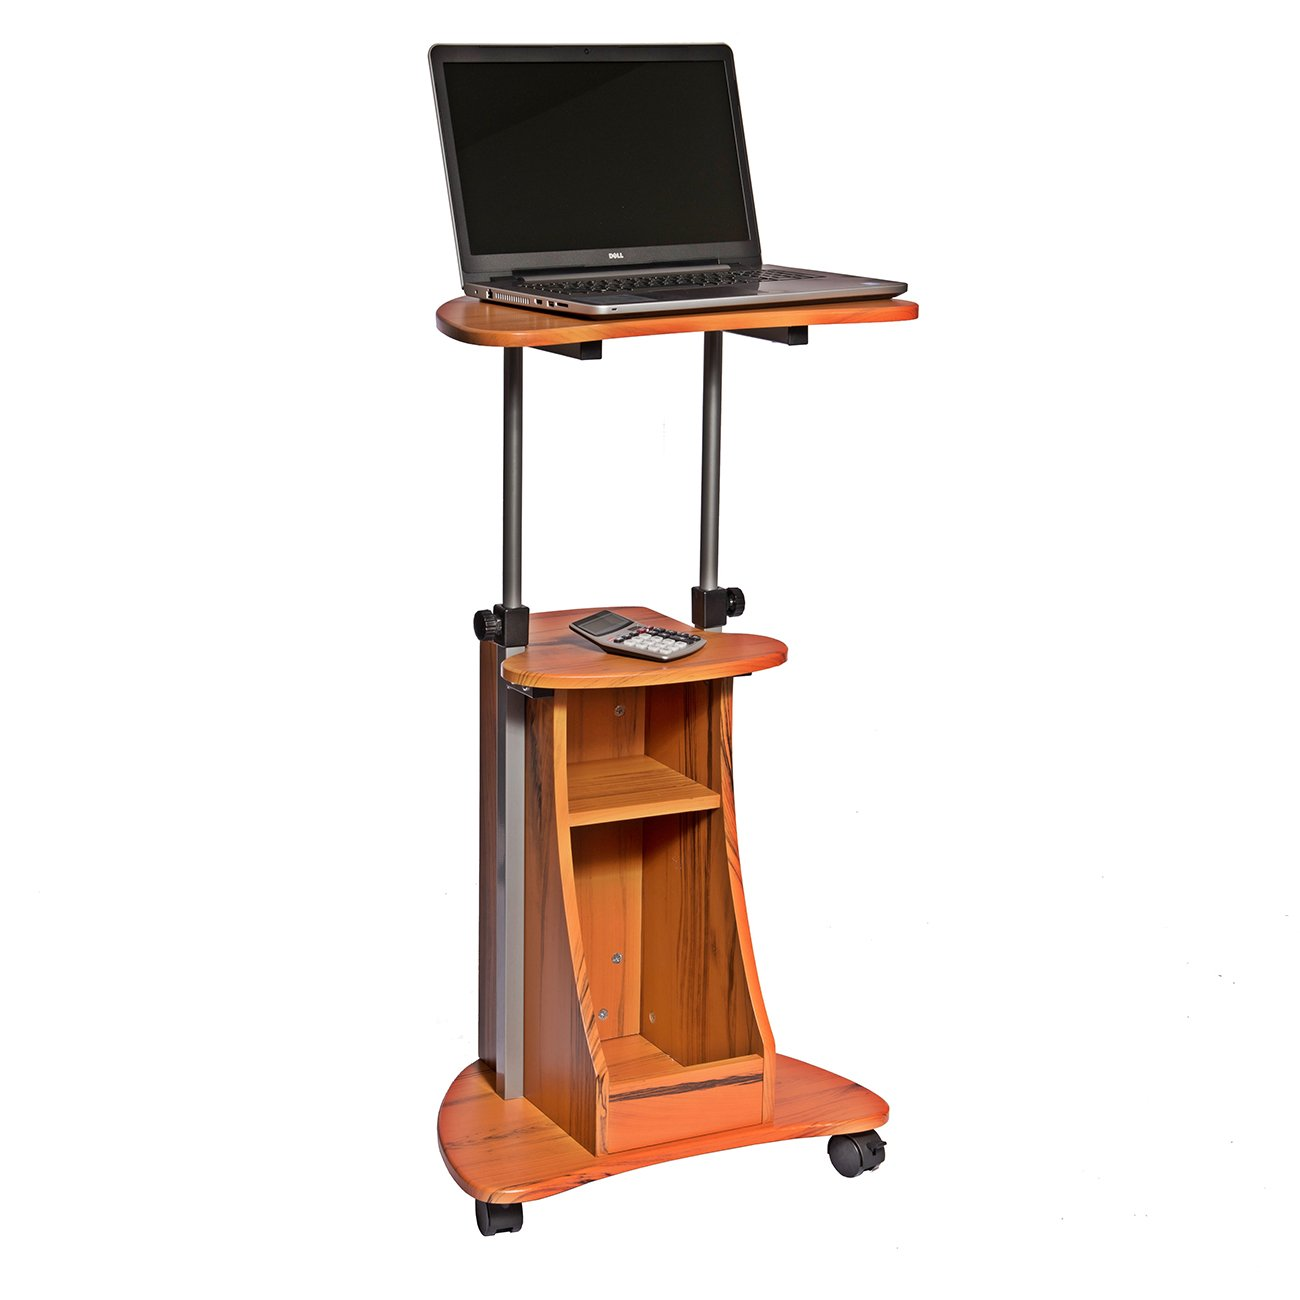 Techni Mobili Adjustable Height Laptop Cart With Storage. Color: Woodgrain